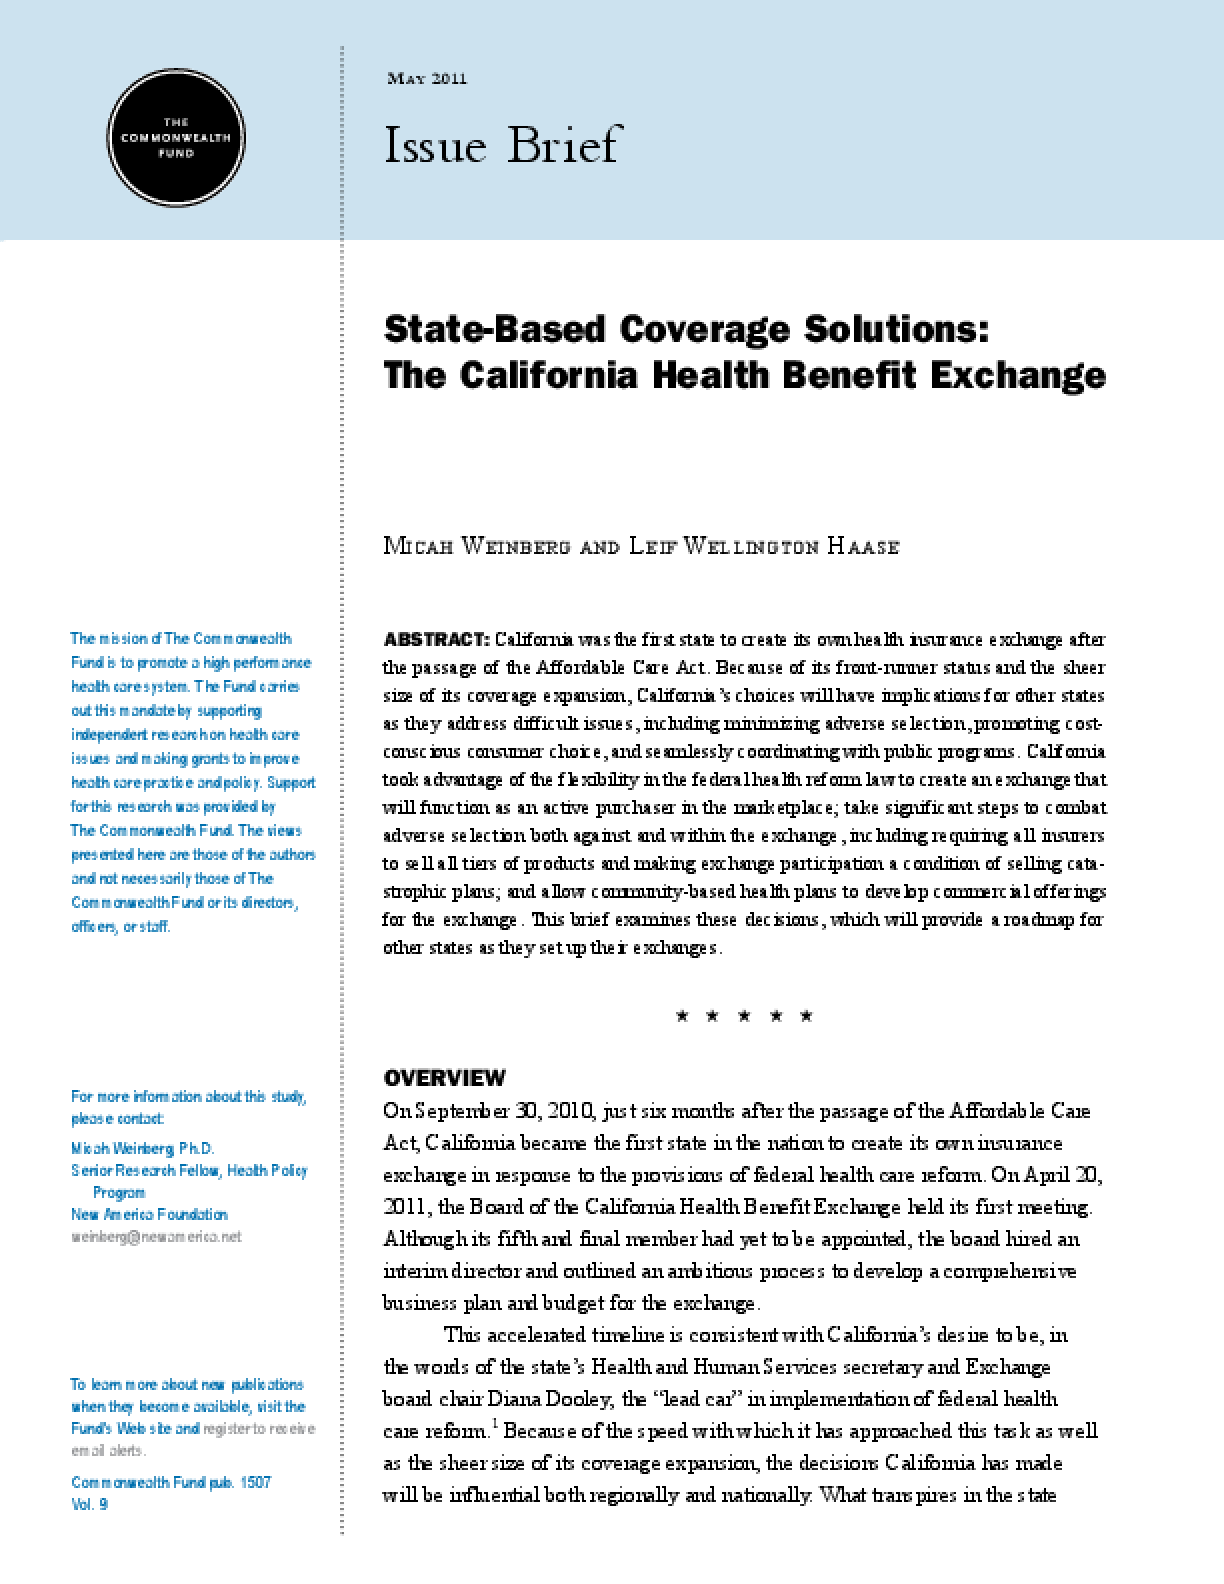 State-Based Coverage Solutions: The California Health Benefit Exchange